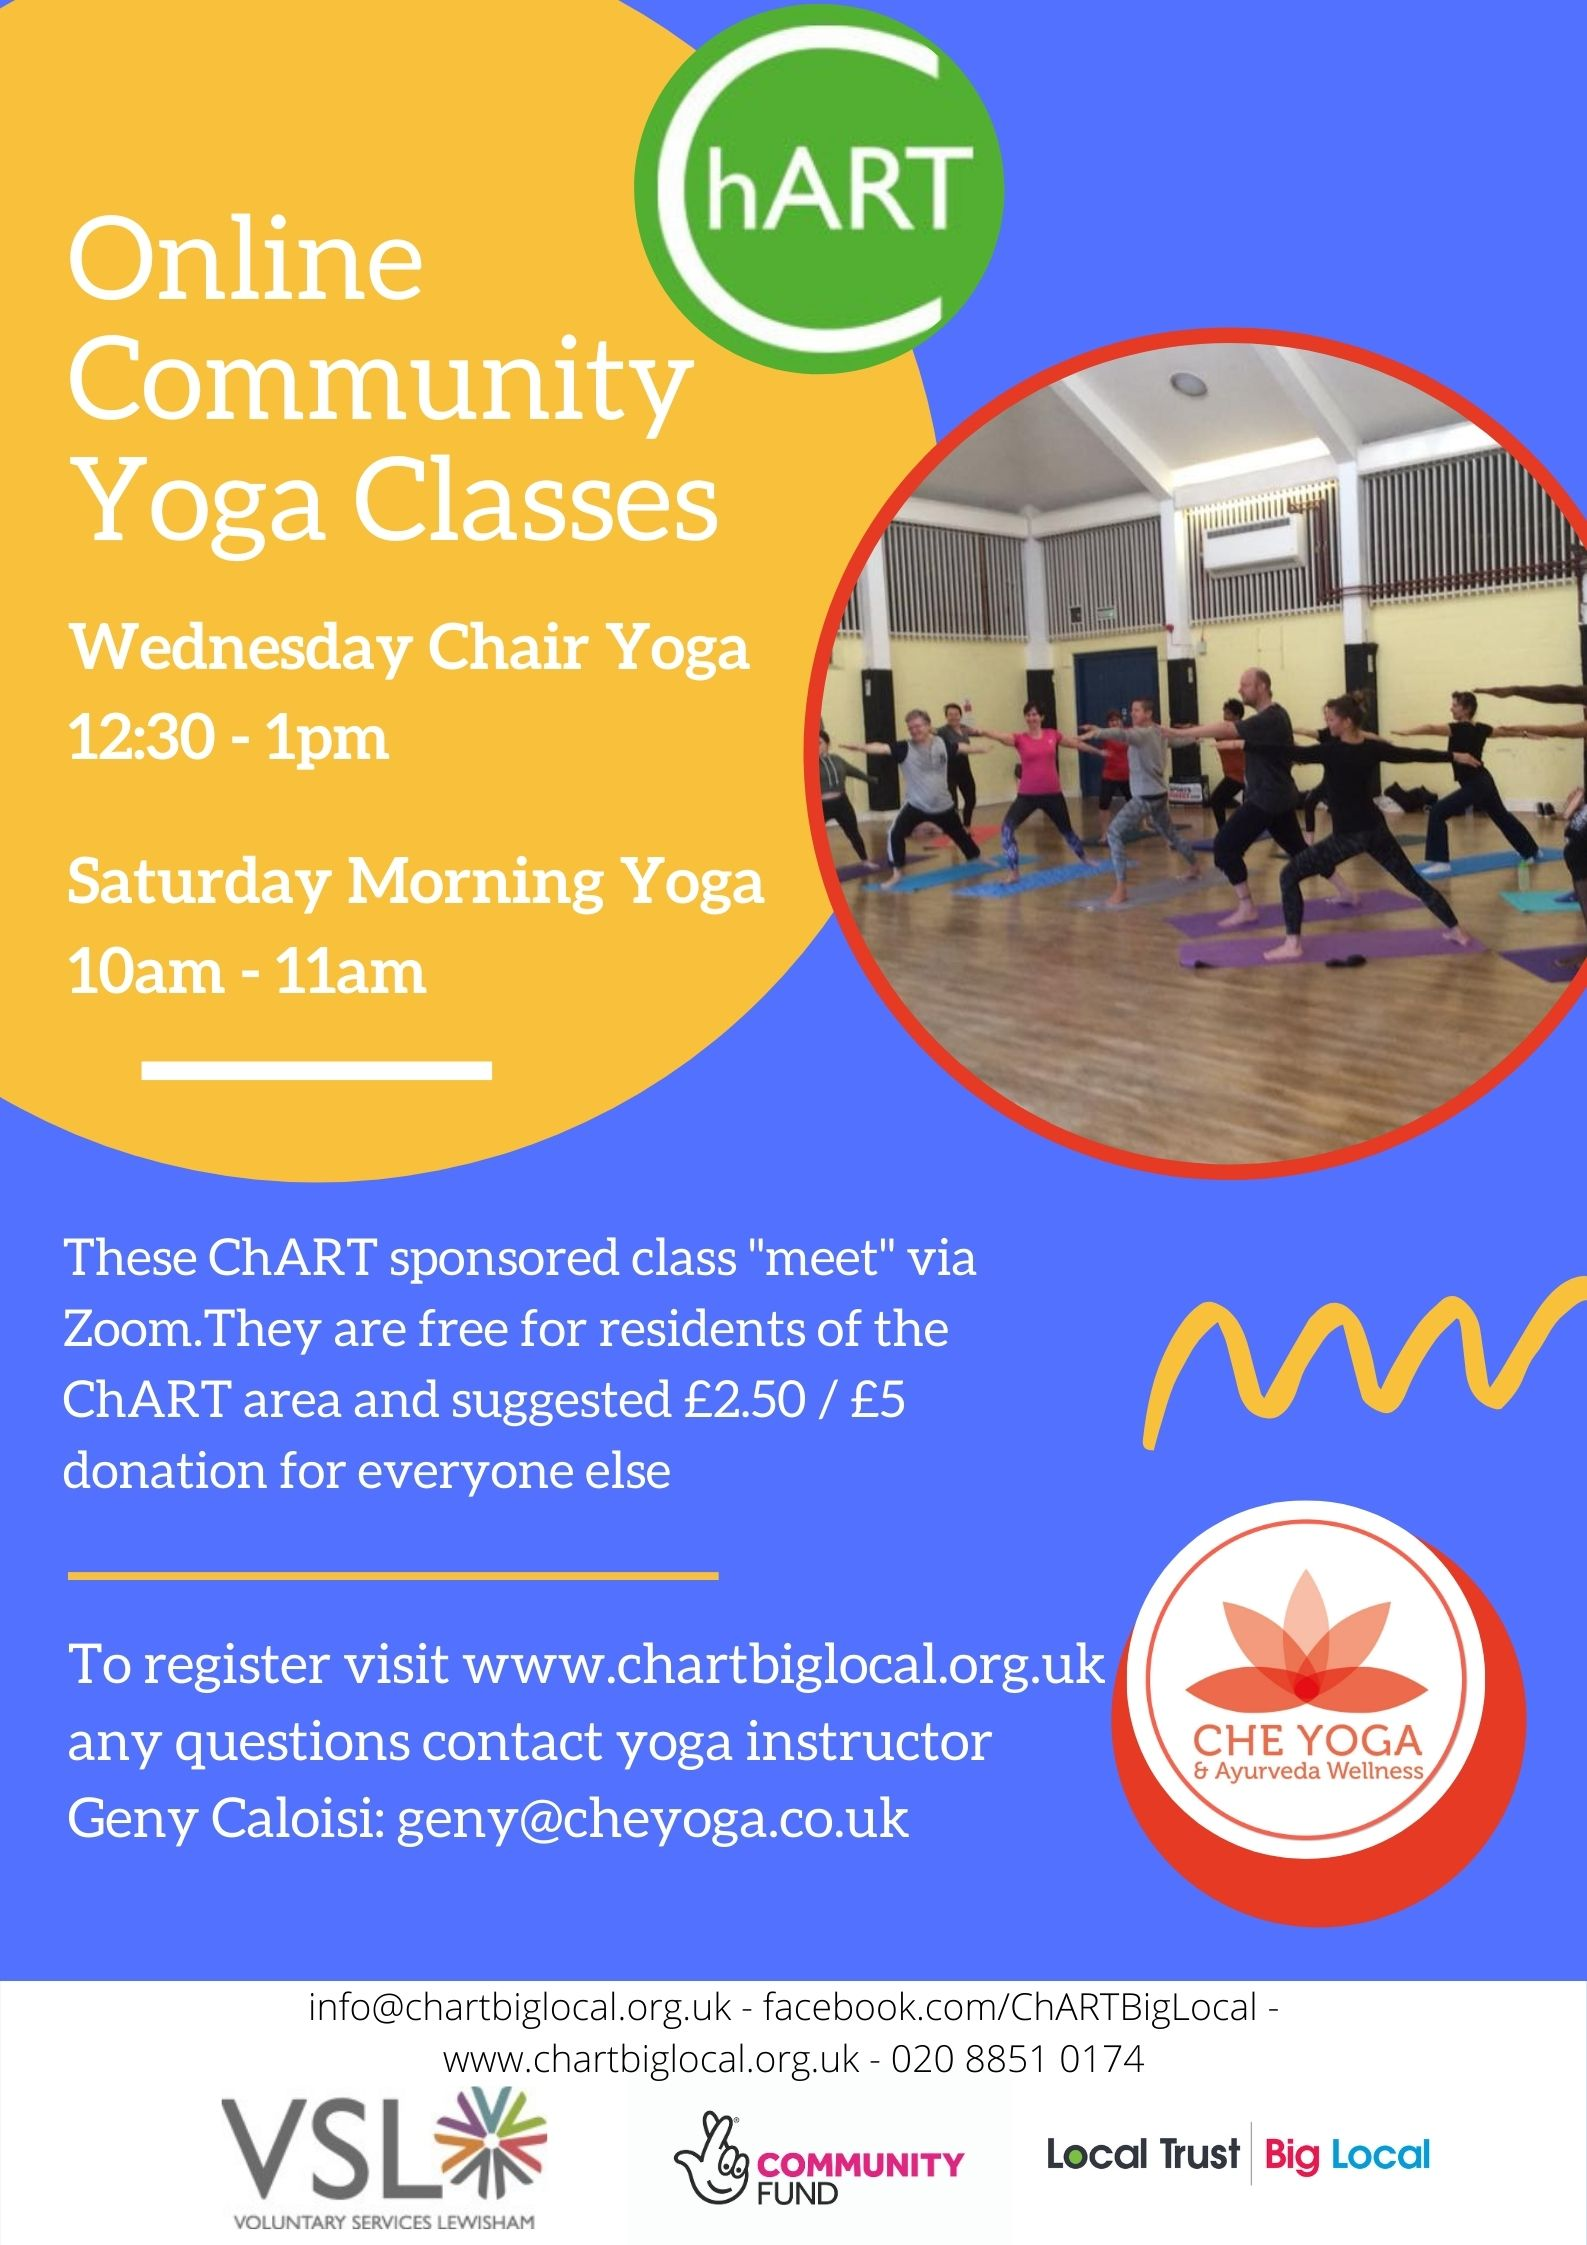 "Poster with blue background, white text on yellow circle reads: Online Community Yoga Classes / Wednesday Chair Yoga 12:30 - 1pm. Saturday Morning Yoga 10am - 11am. White text on blue background reads: These ChART sponsored class ""meet"" via Zoom. They are free for residents of the ChART area and suggested £2.50 / £5 donation for everyone else. To register visit www.chartbiglocal.org.uk  any questions contact yoga instructor  Geny Caloisi: geny@cheyoga.co.uk Image in circle show community yoga class in a hall."